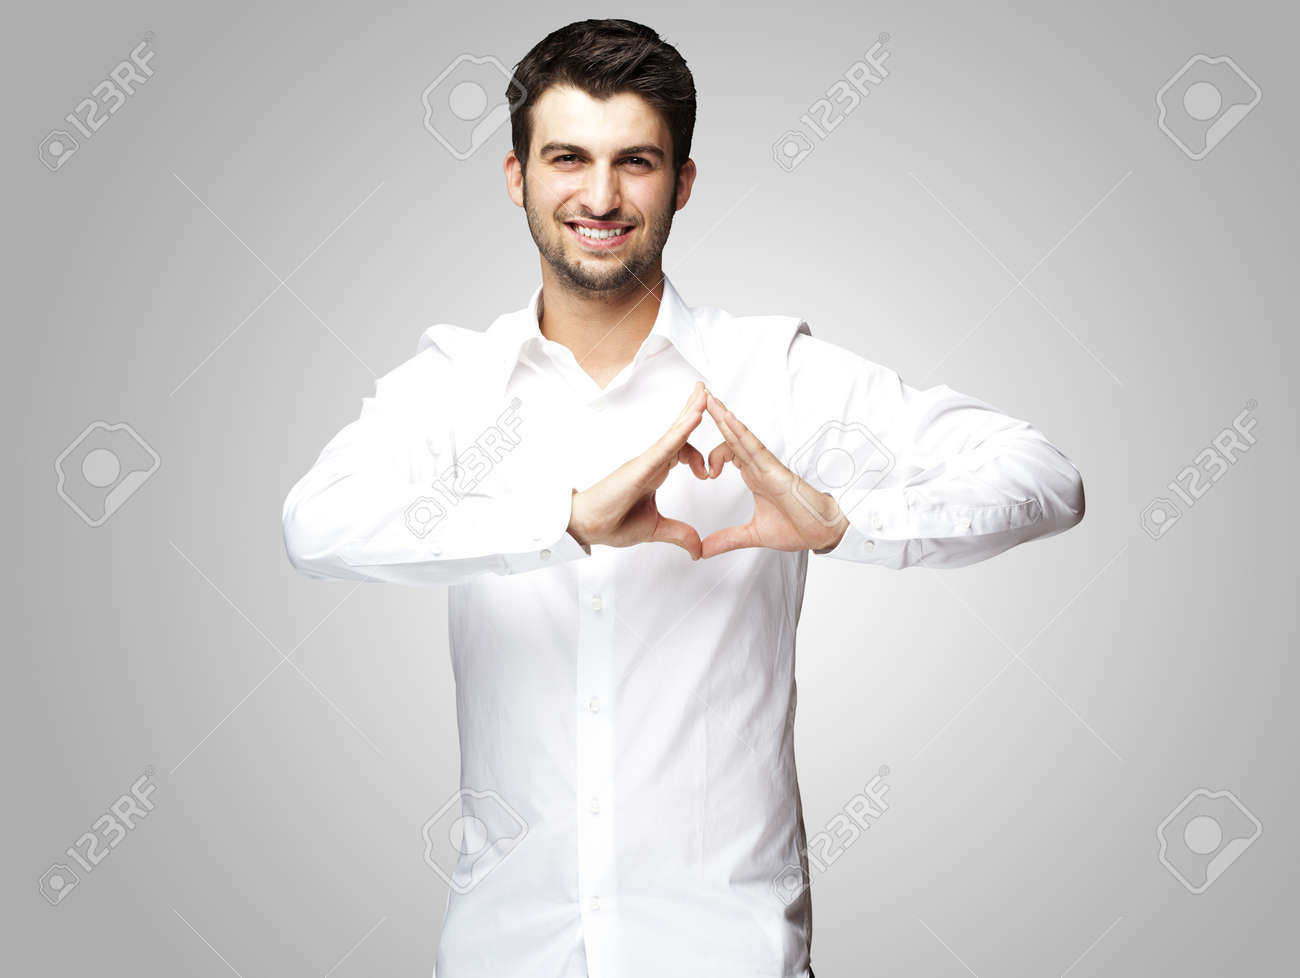 portrait of young man doing heart gesture against a grey background Stock Photo - 14438847